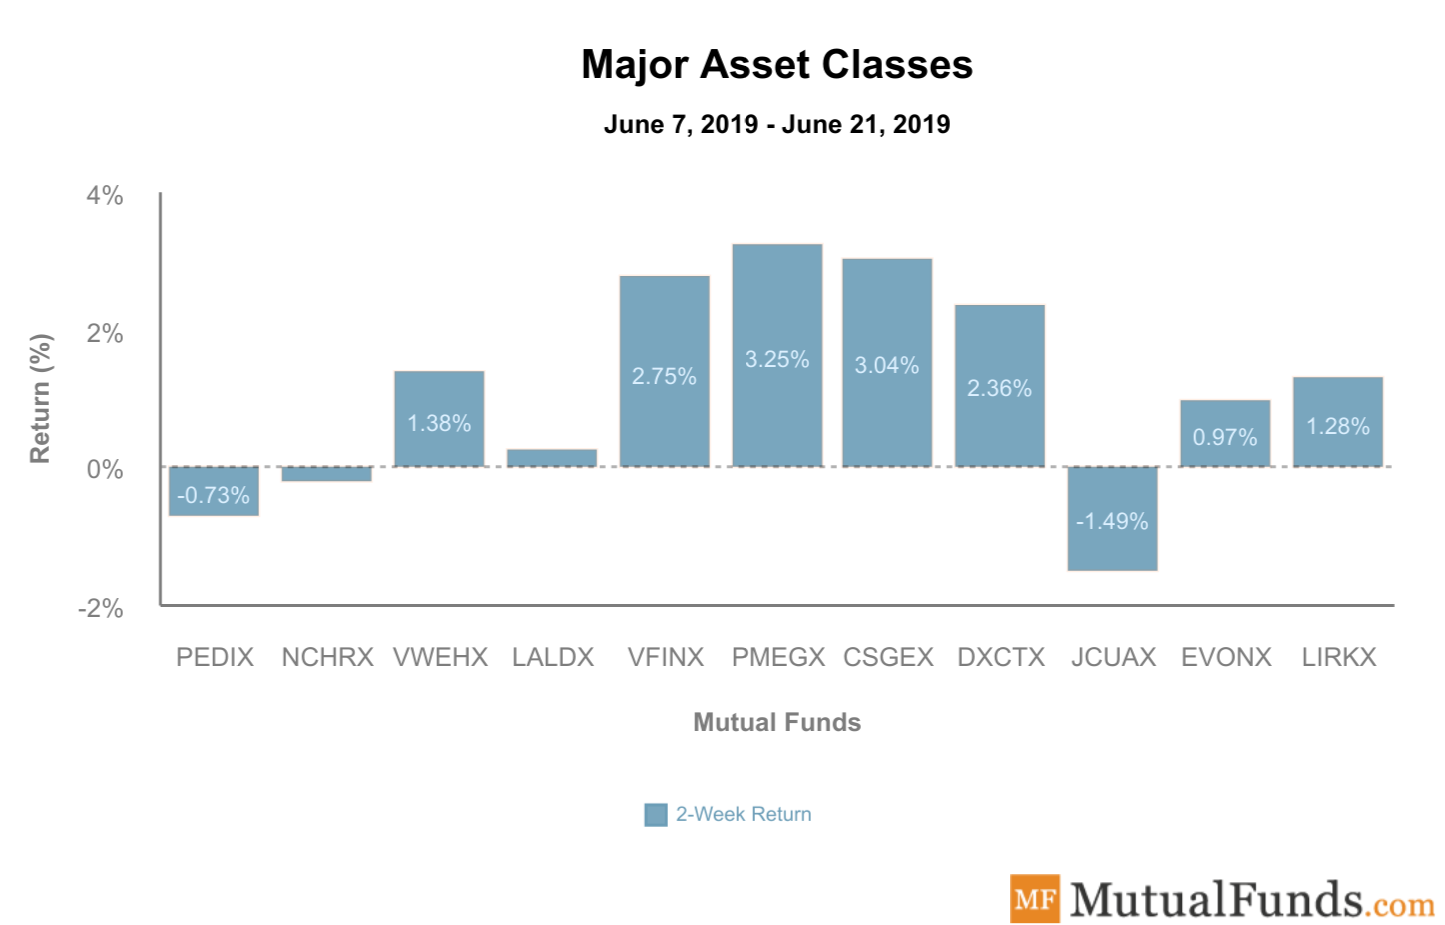 Major Asset Classes June 25 2019